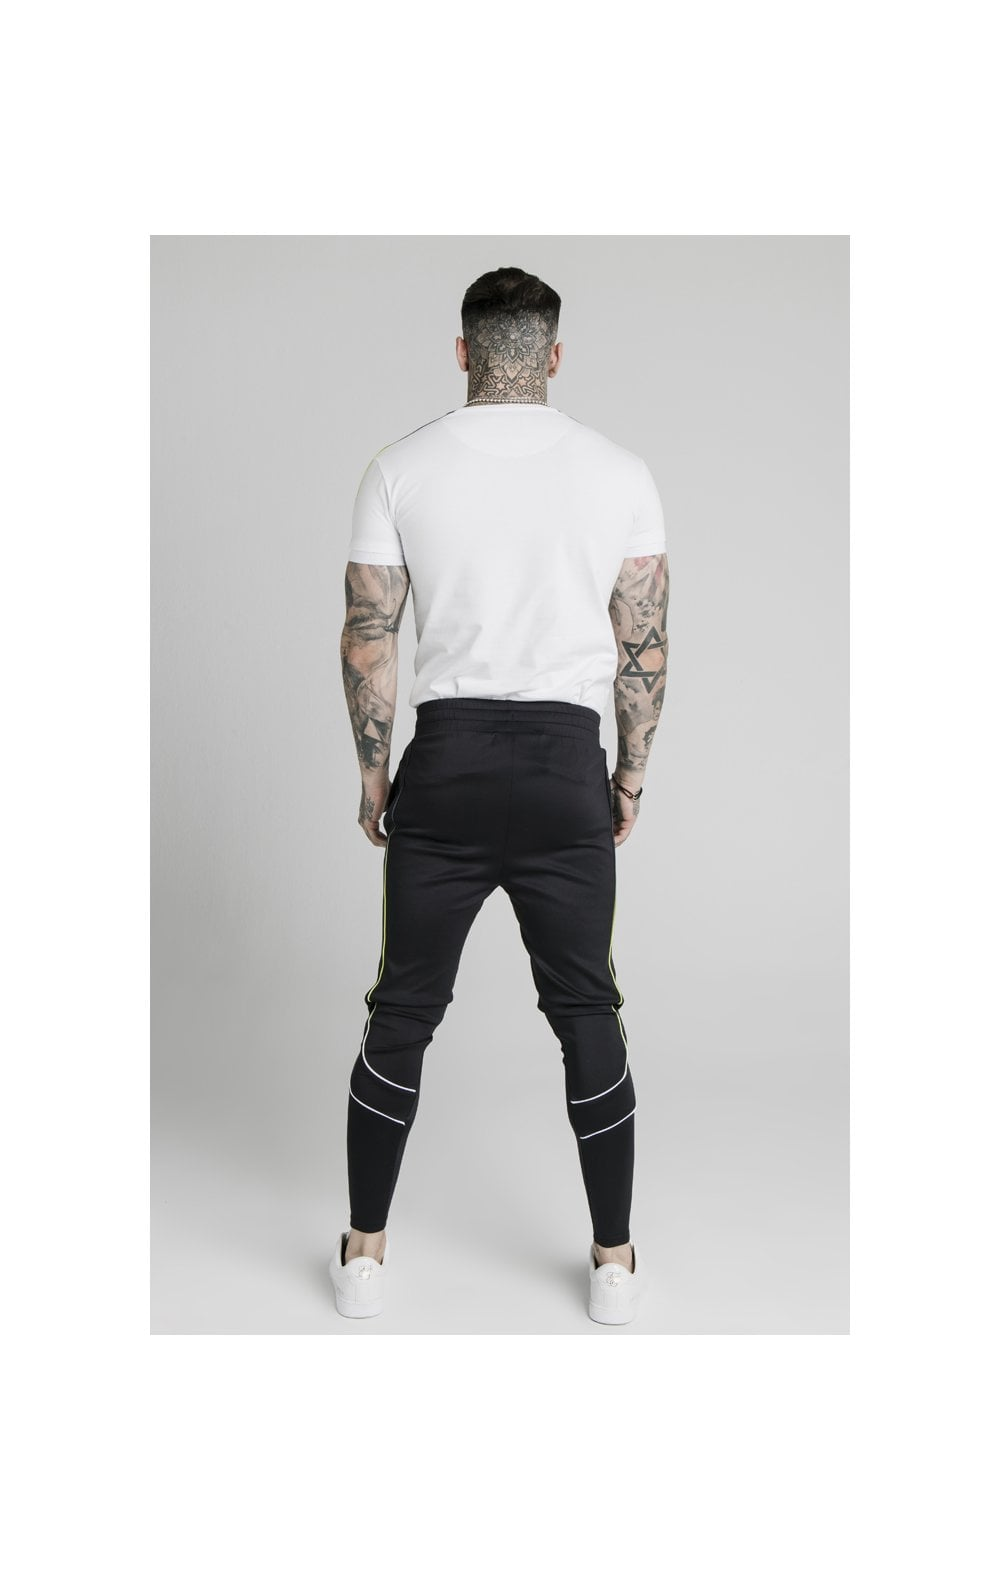 SikSilk S/S Fade Panel Tech Tee - White (4)